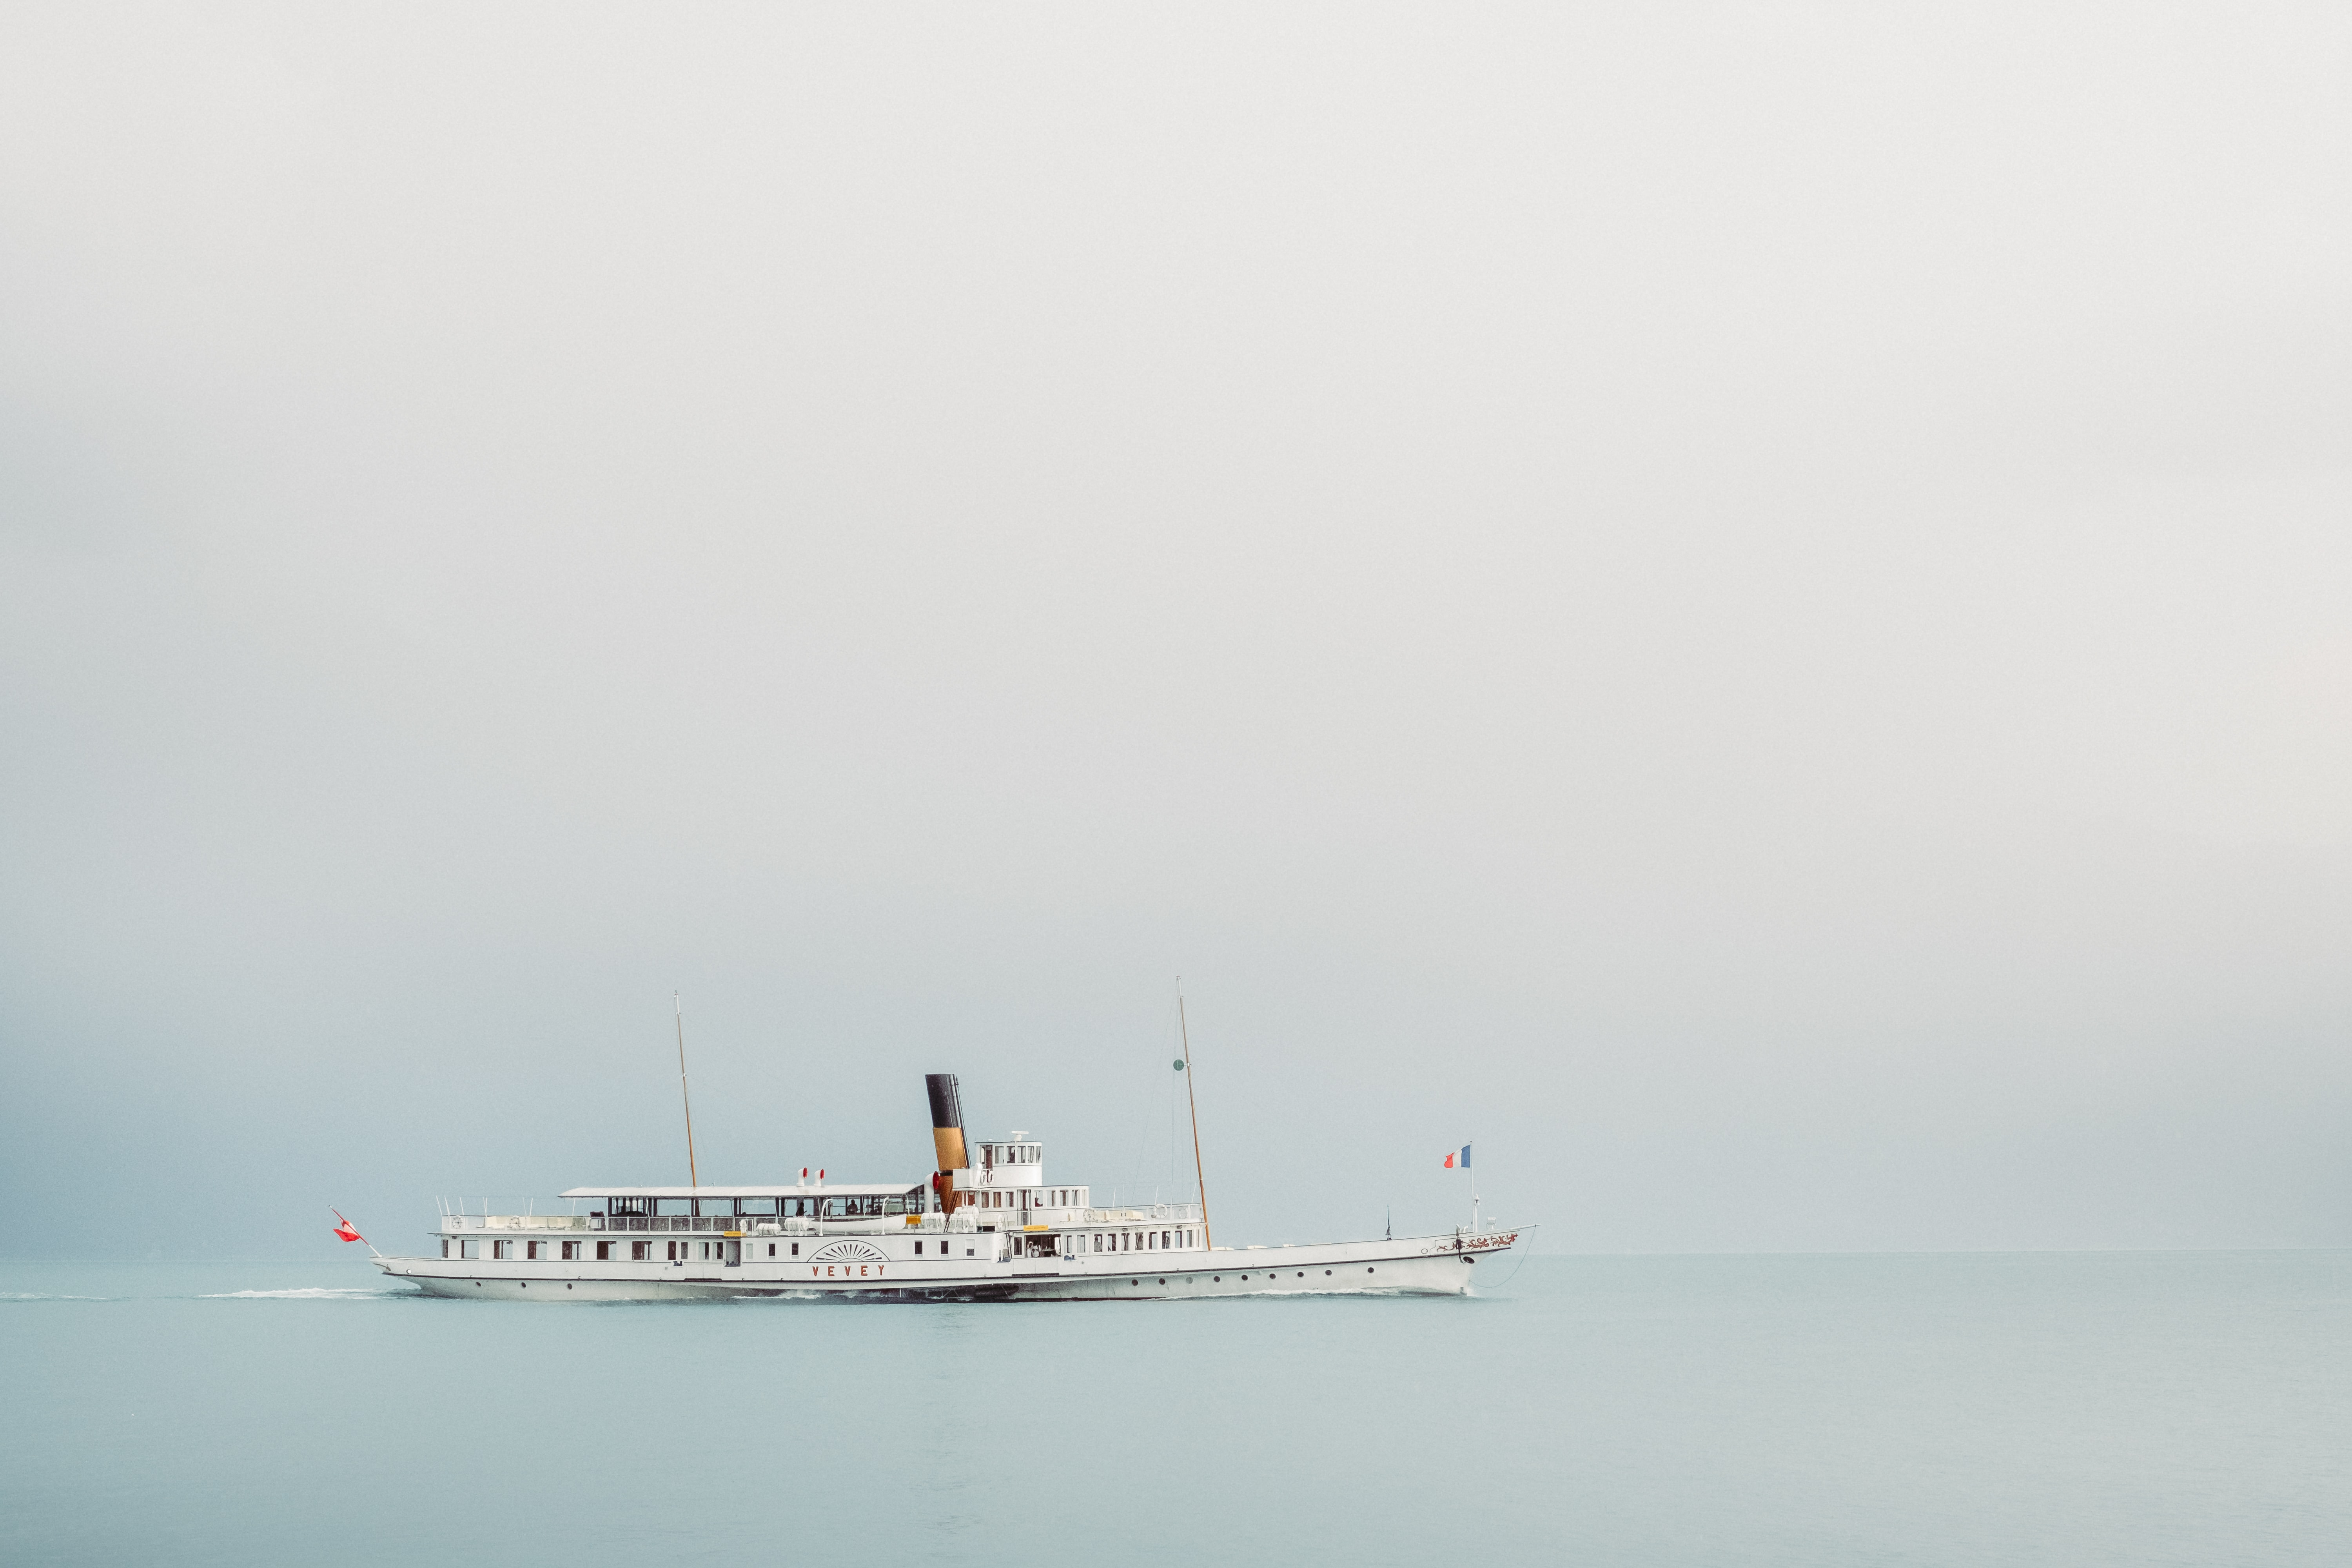 A beautiful steamboat gliding over the calm ocean in Vevey on a foggy day